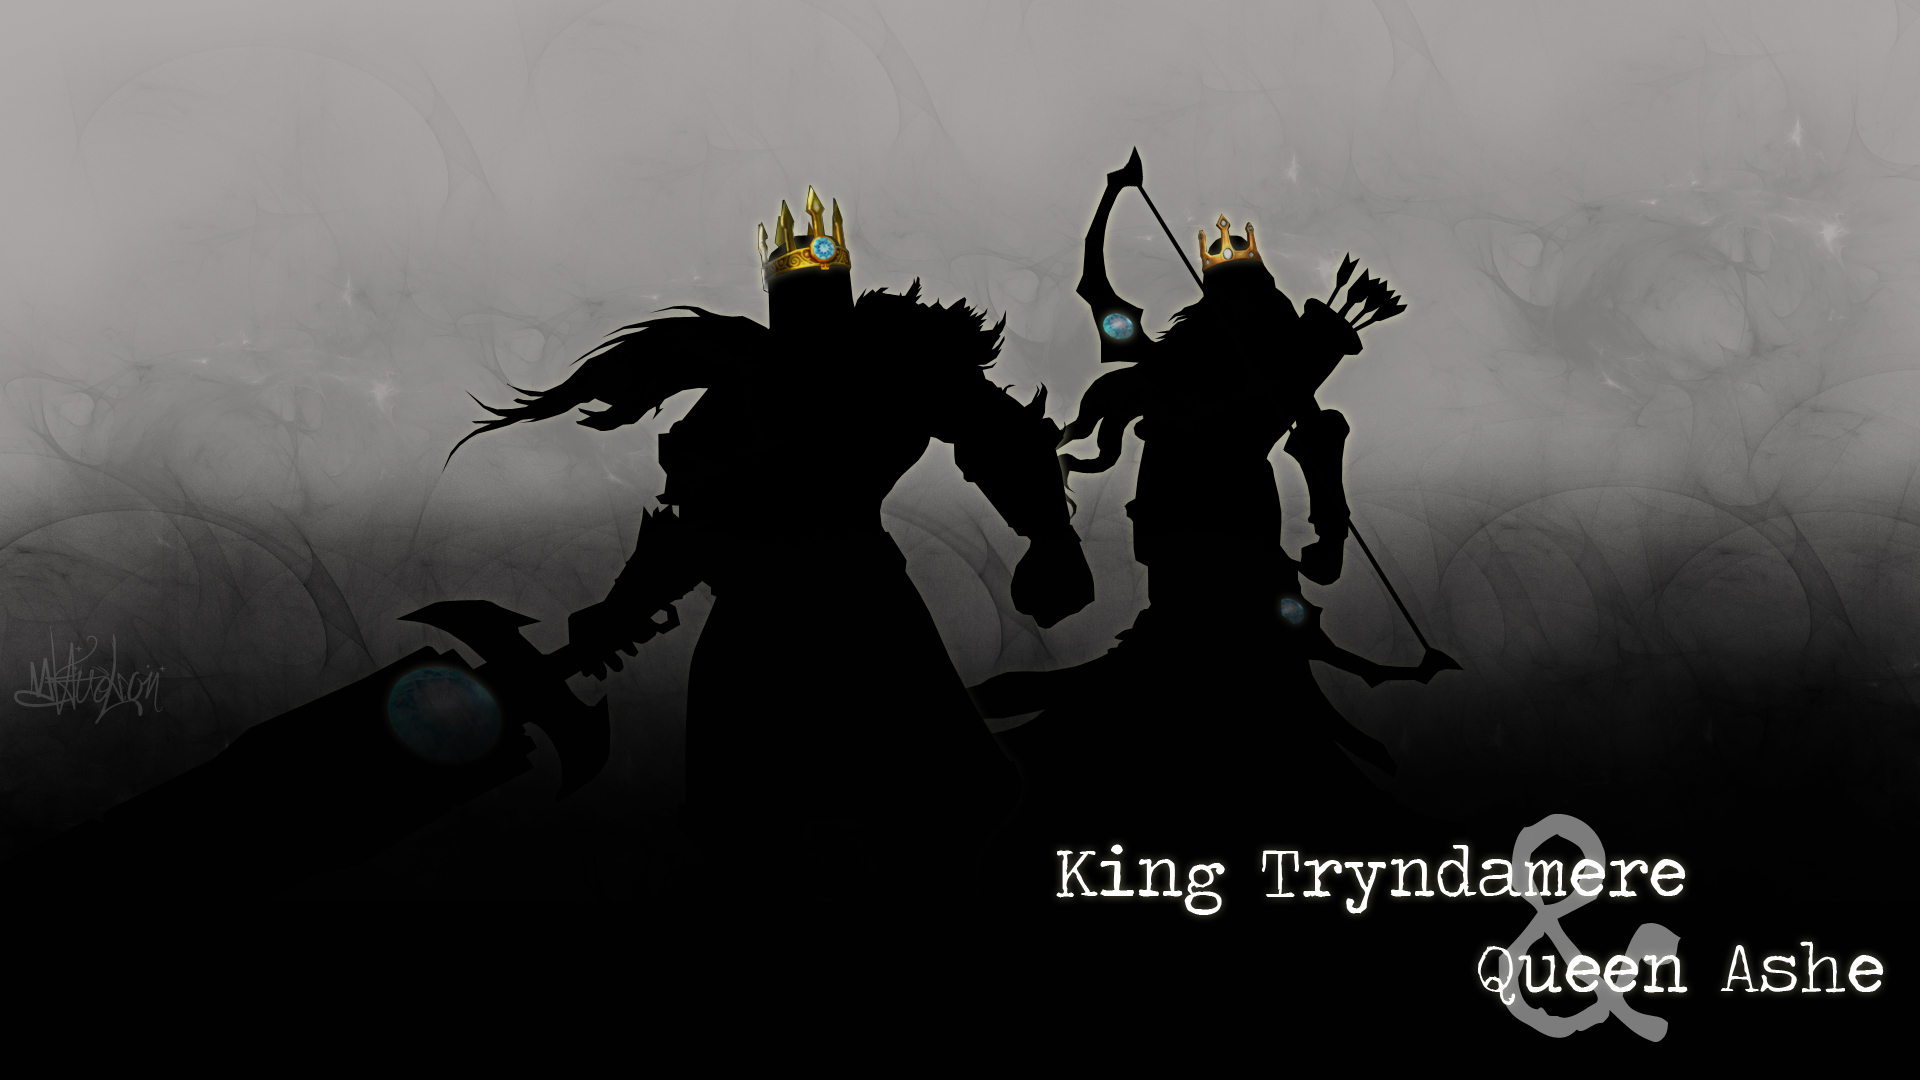 queen_ashe_and_king_tryndamere_wallpaper_by_cassaria-d57icdj